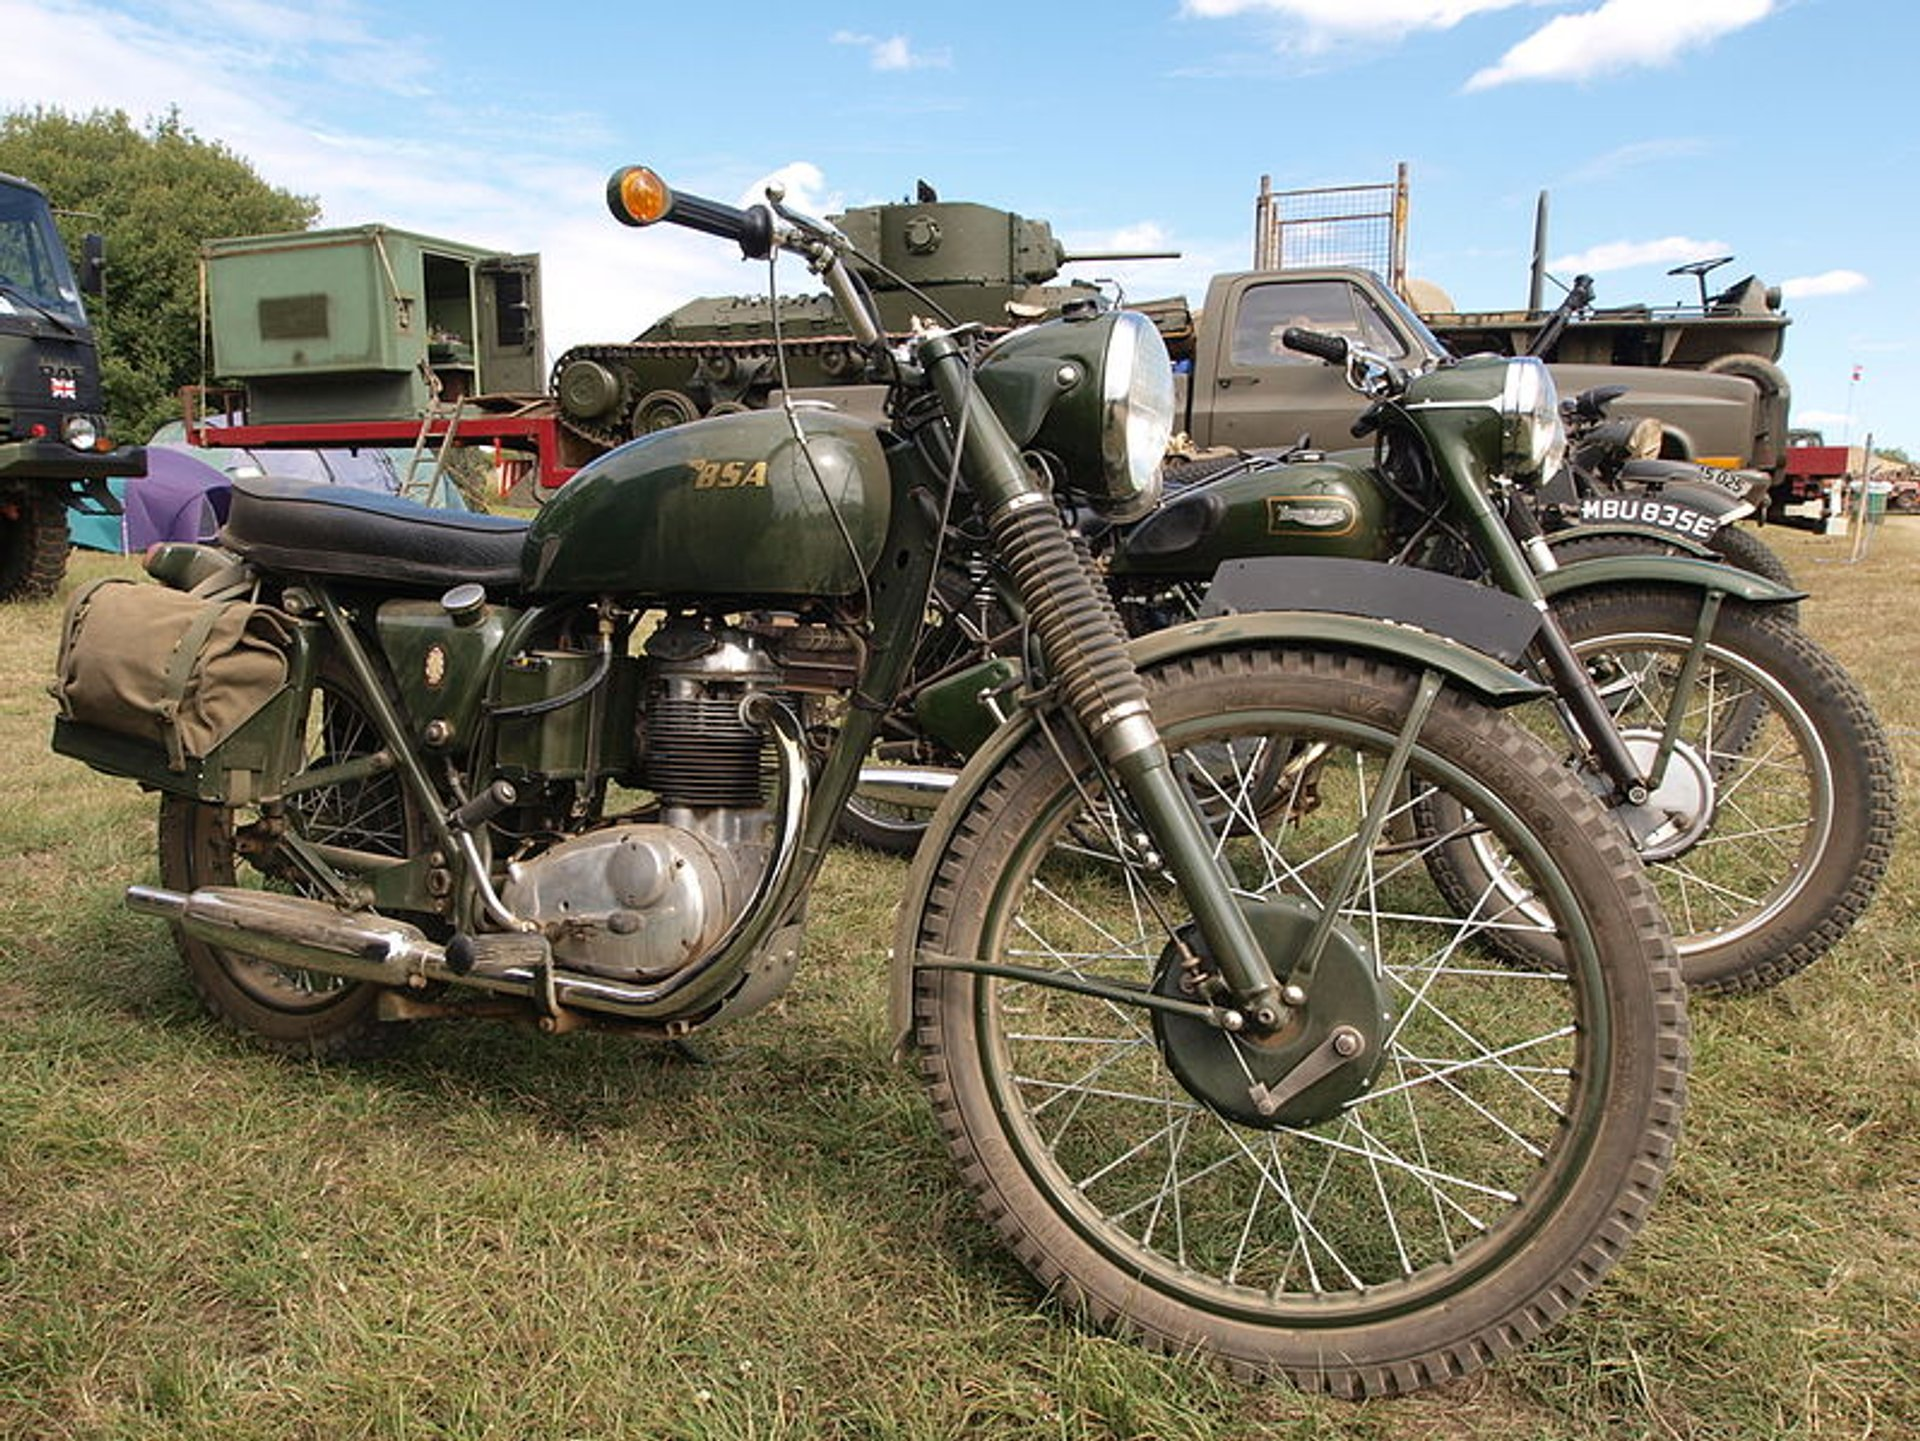 Best time for The War and Peace Revival in England 2019